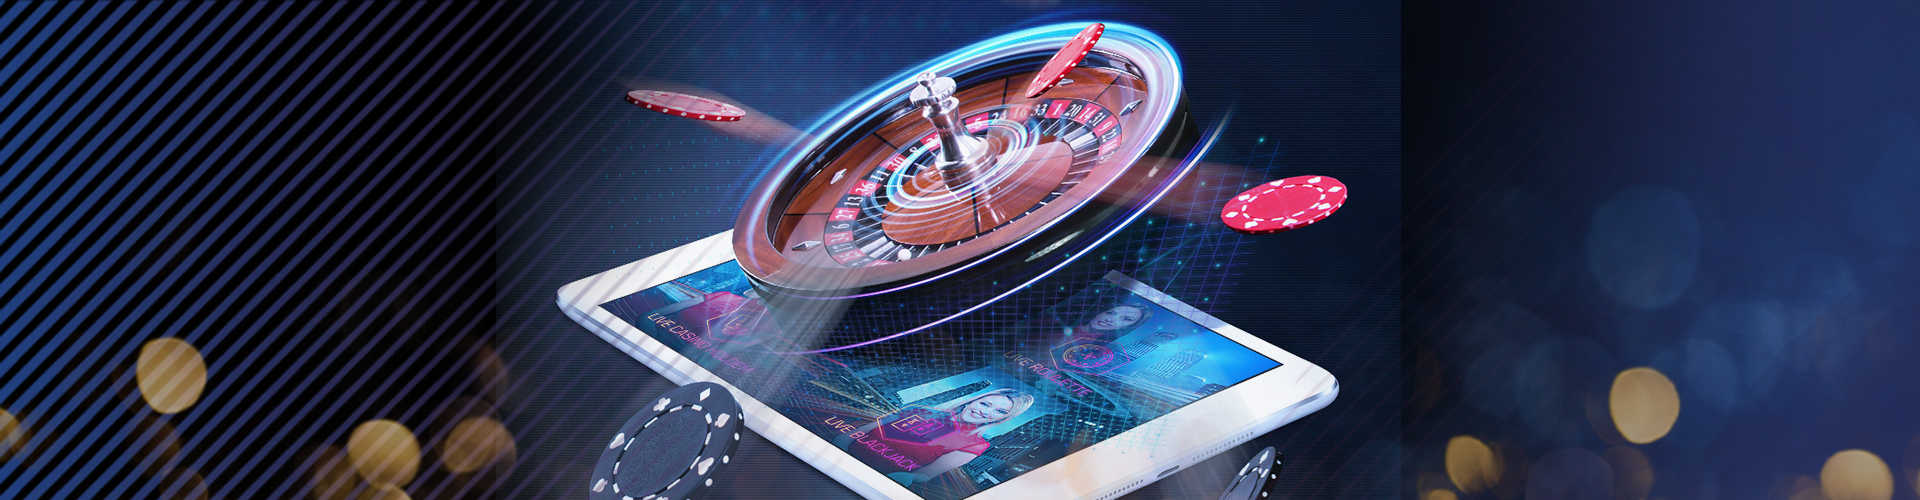 Betting at roulette